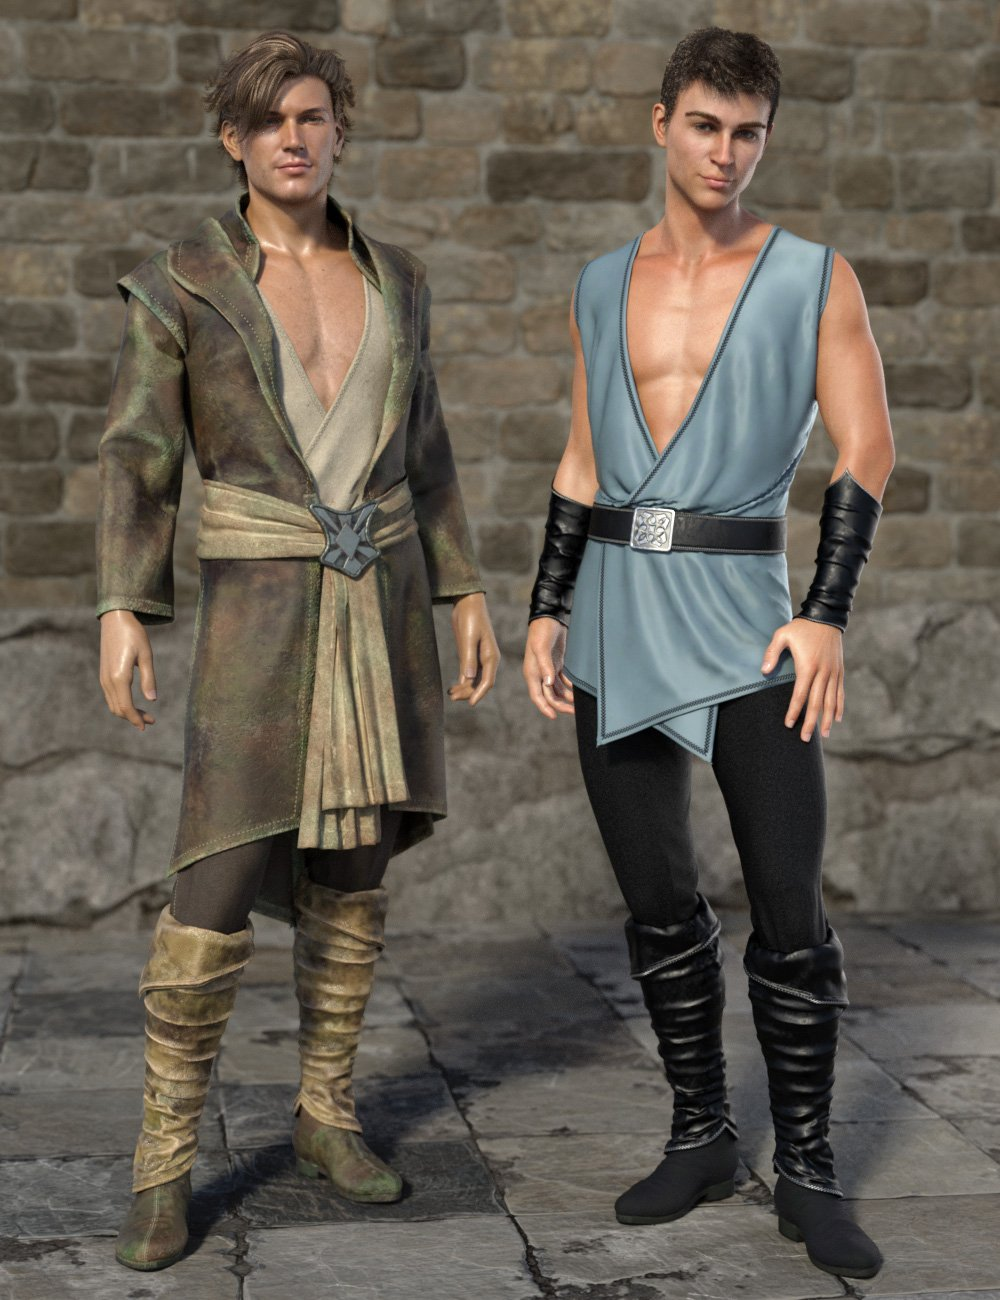 dForce Royal Fantasy Outfit for Genesis 8 Male(s) by: esha, 3D Models by Daz 3D